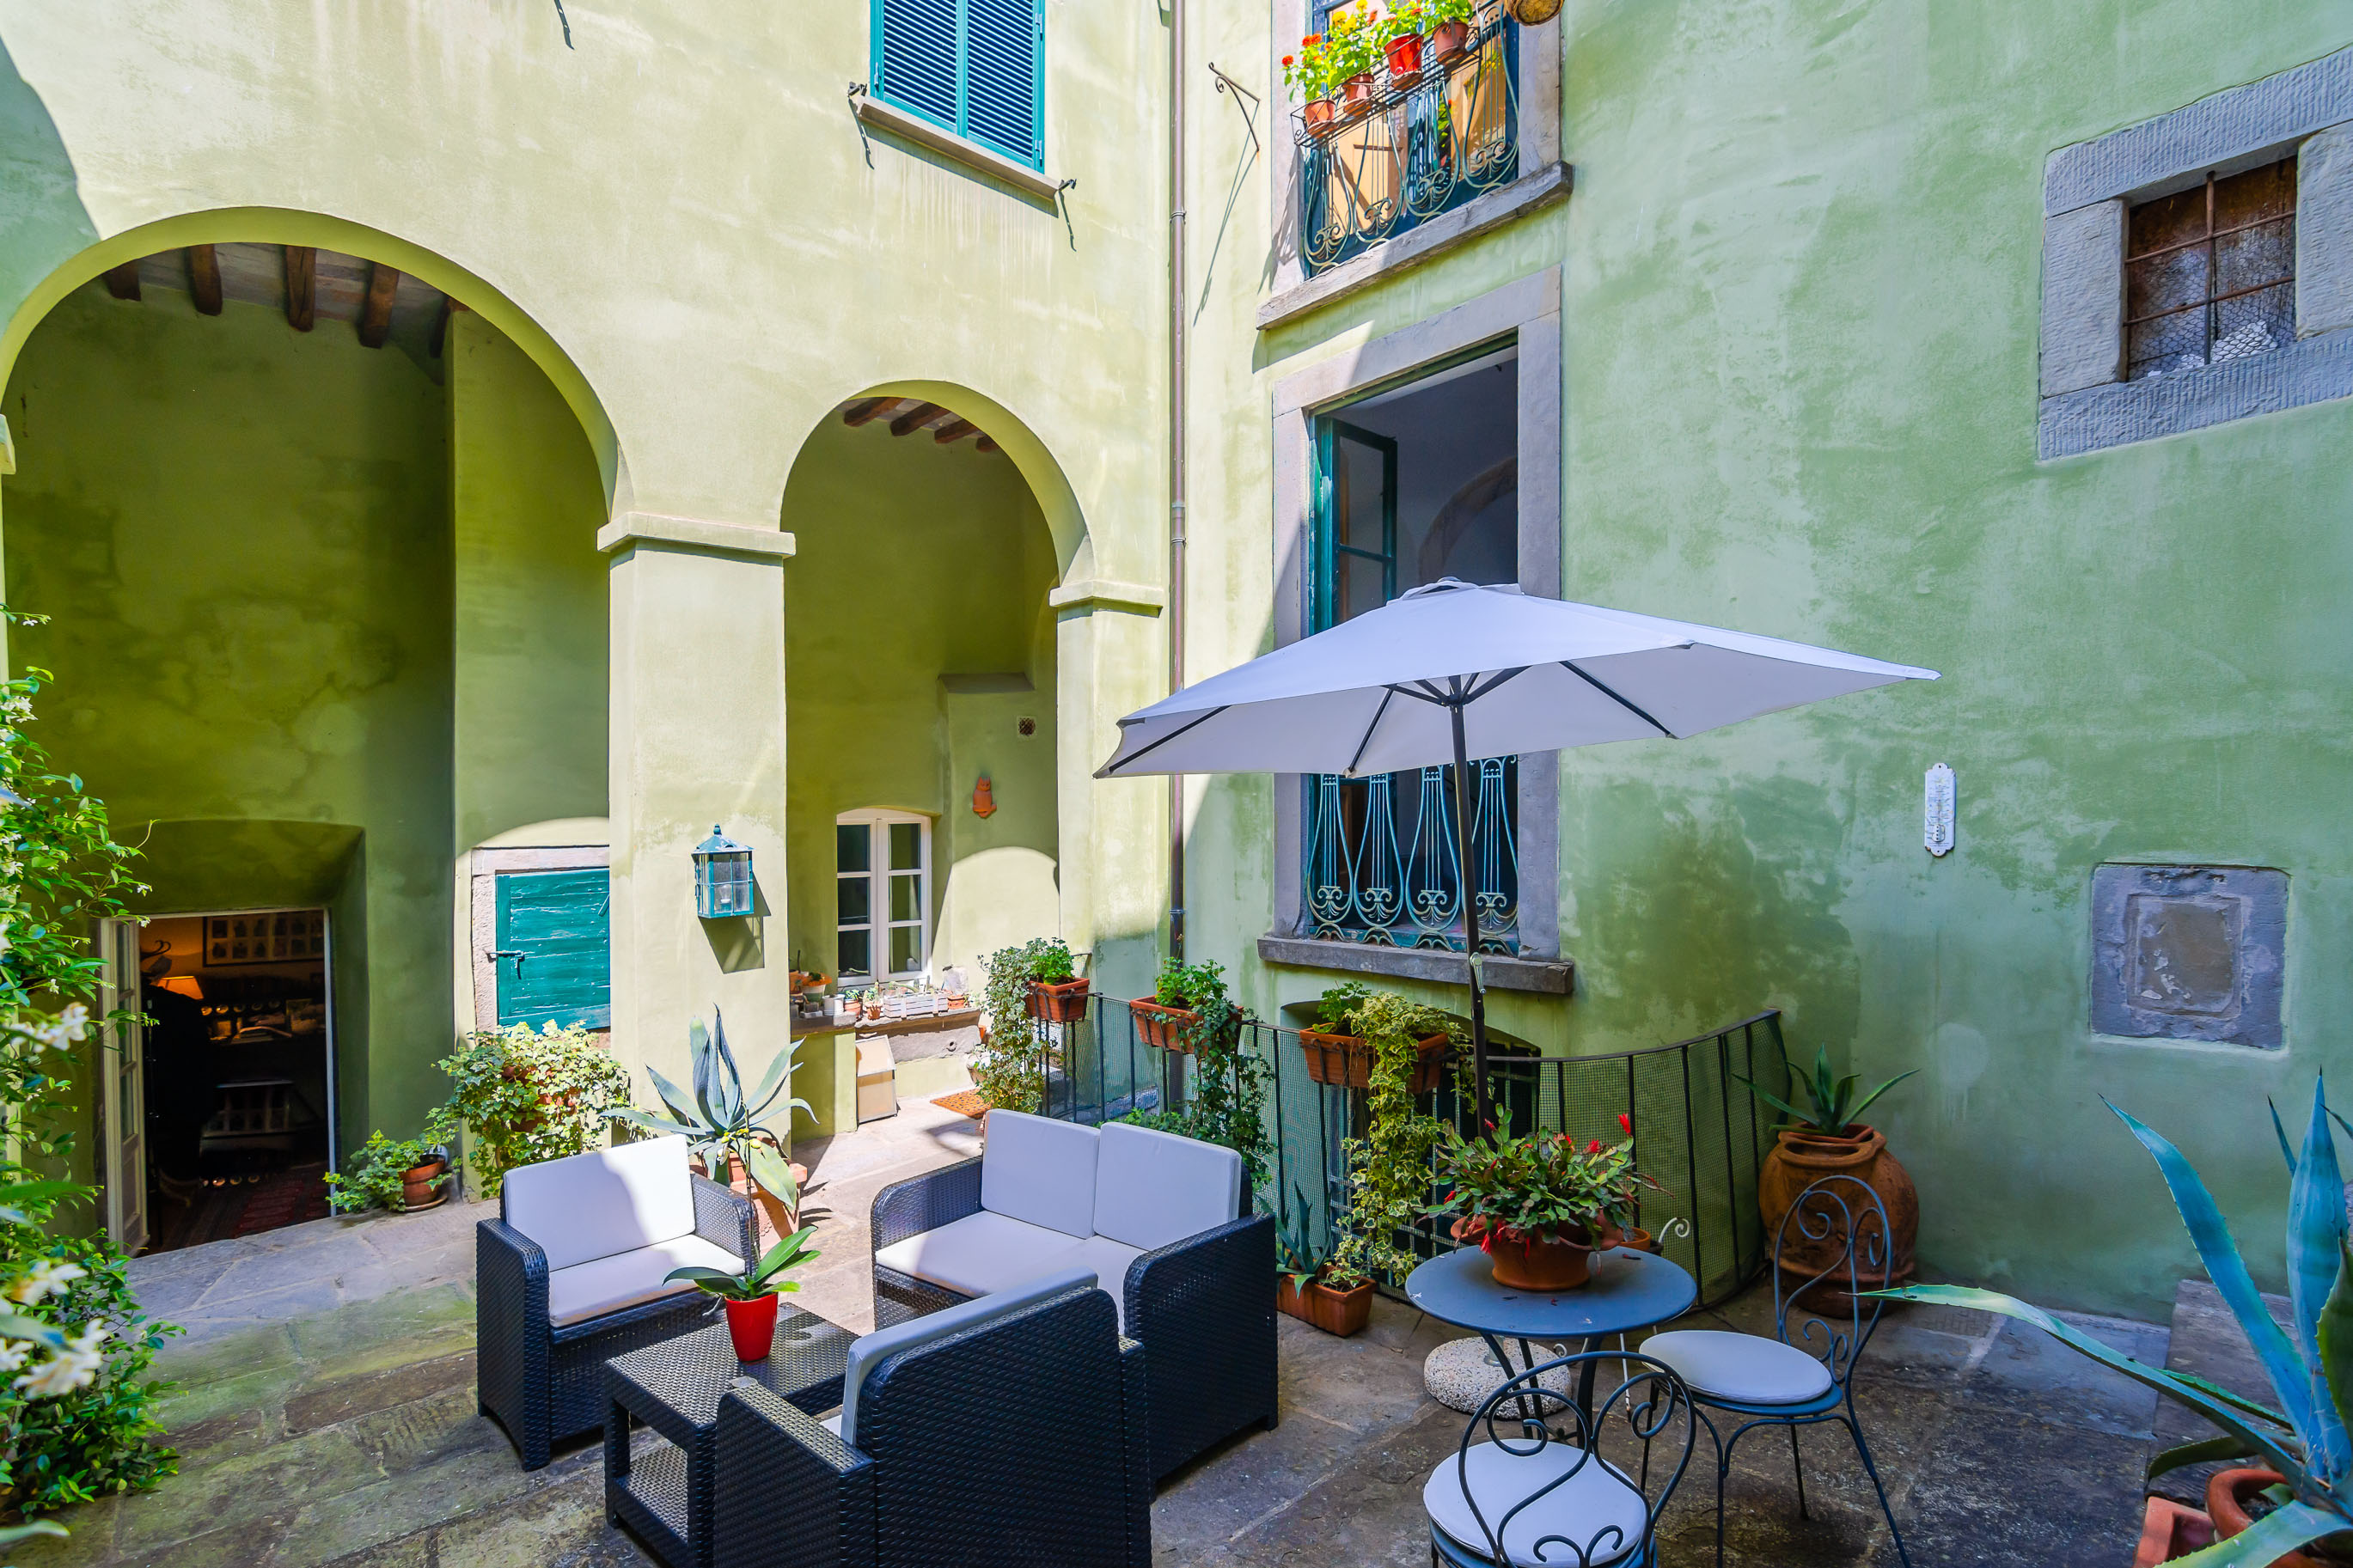 Apartment with courtyard and Dependance